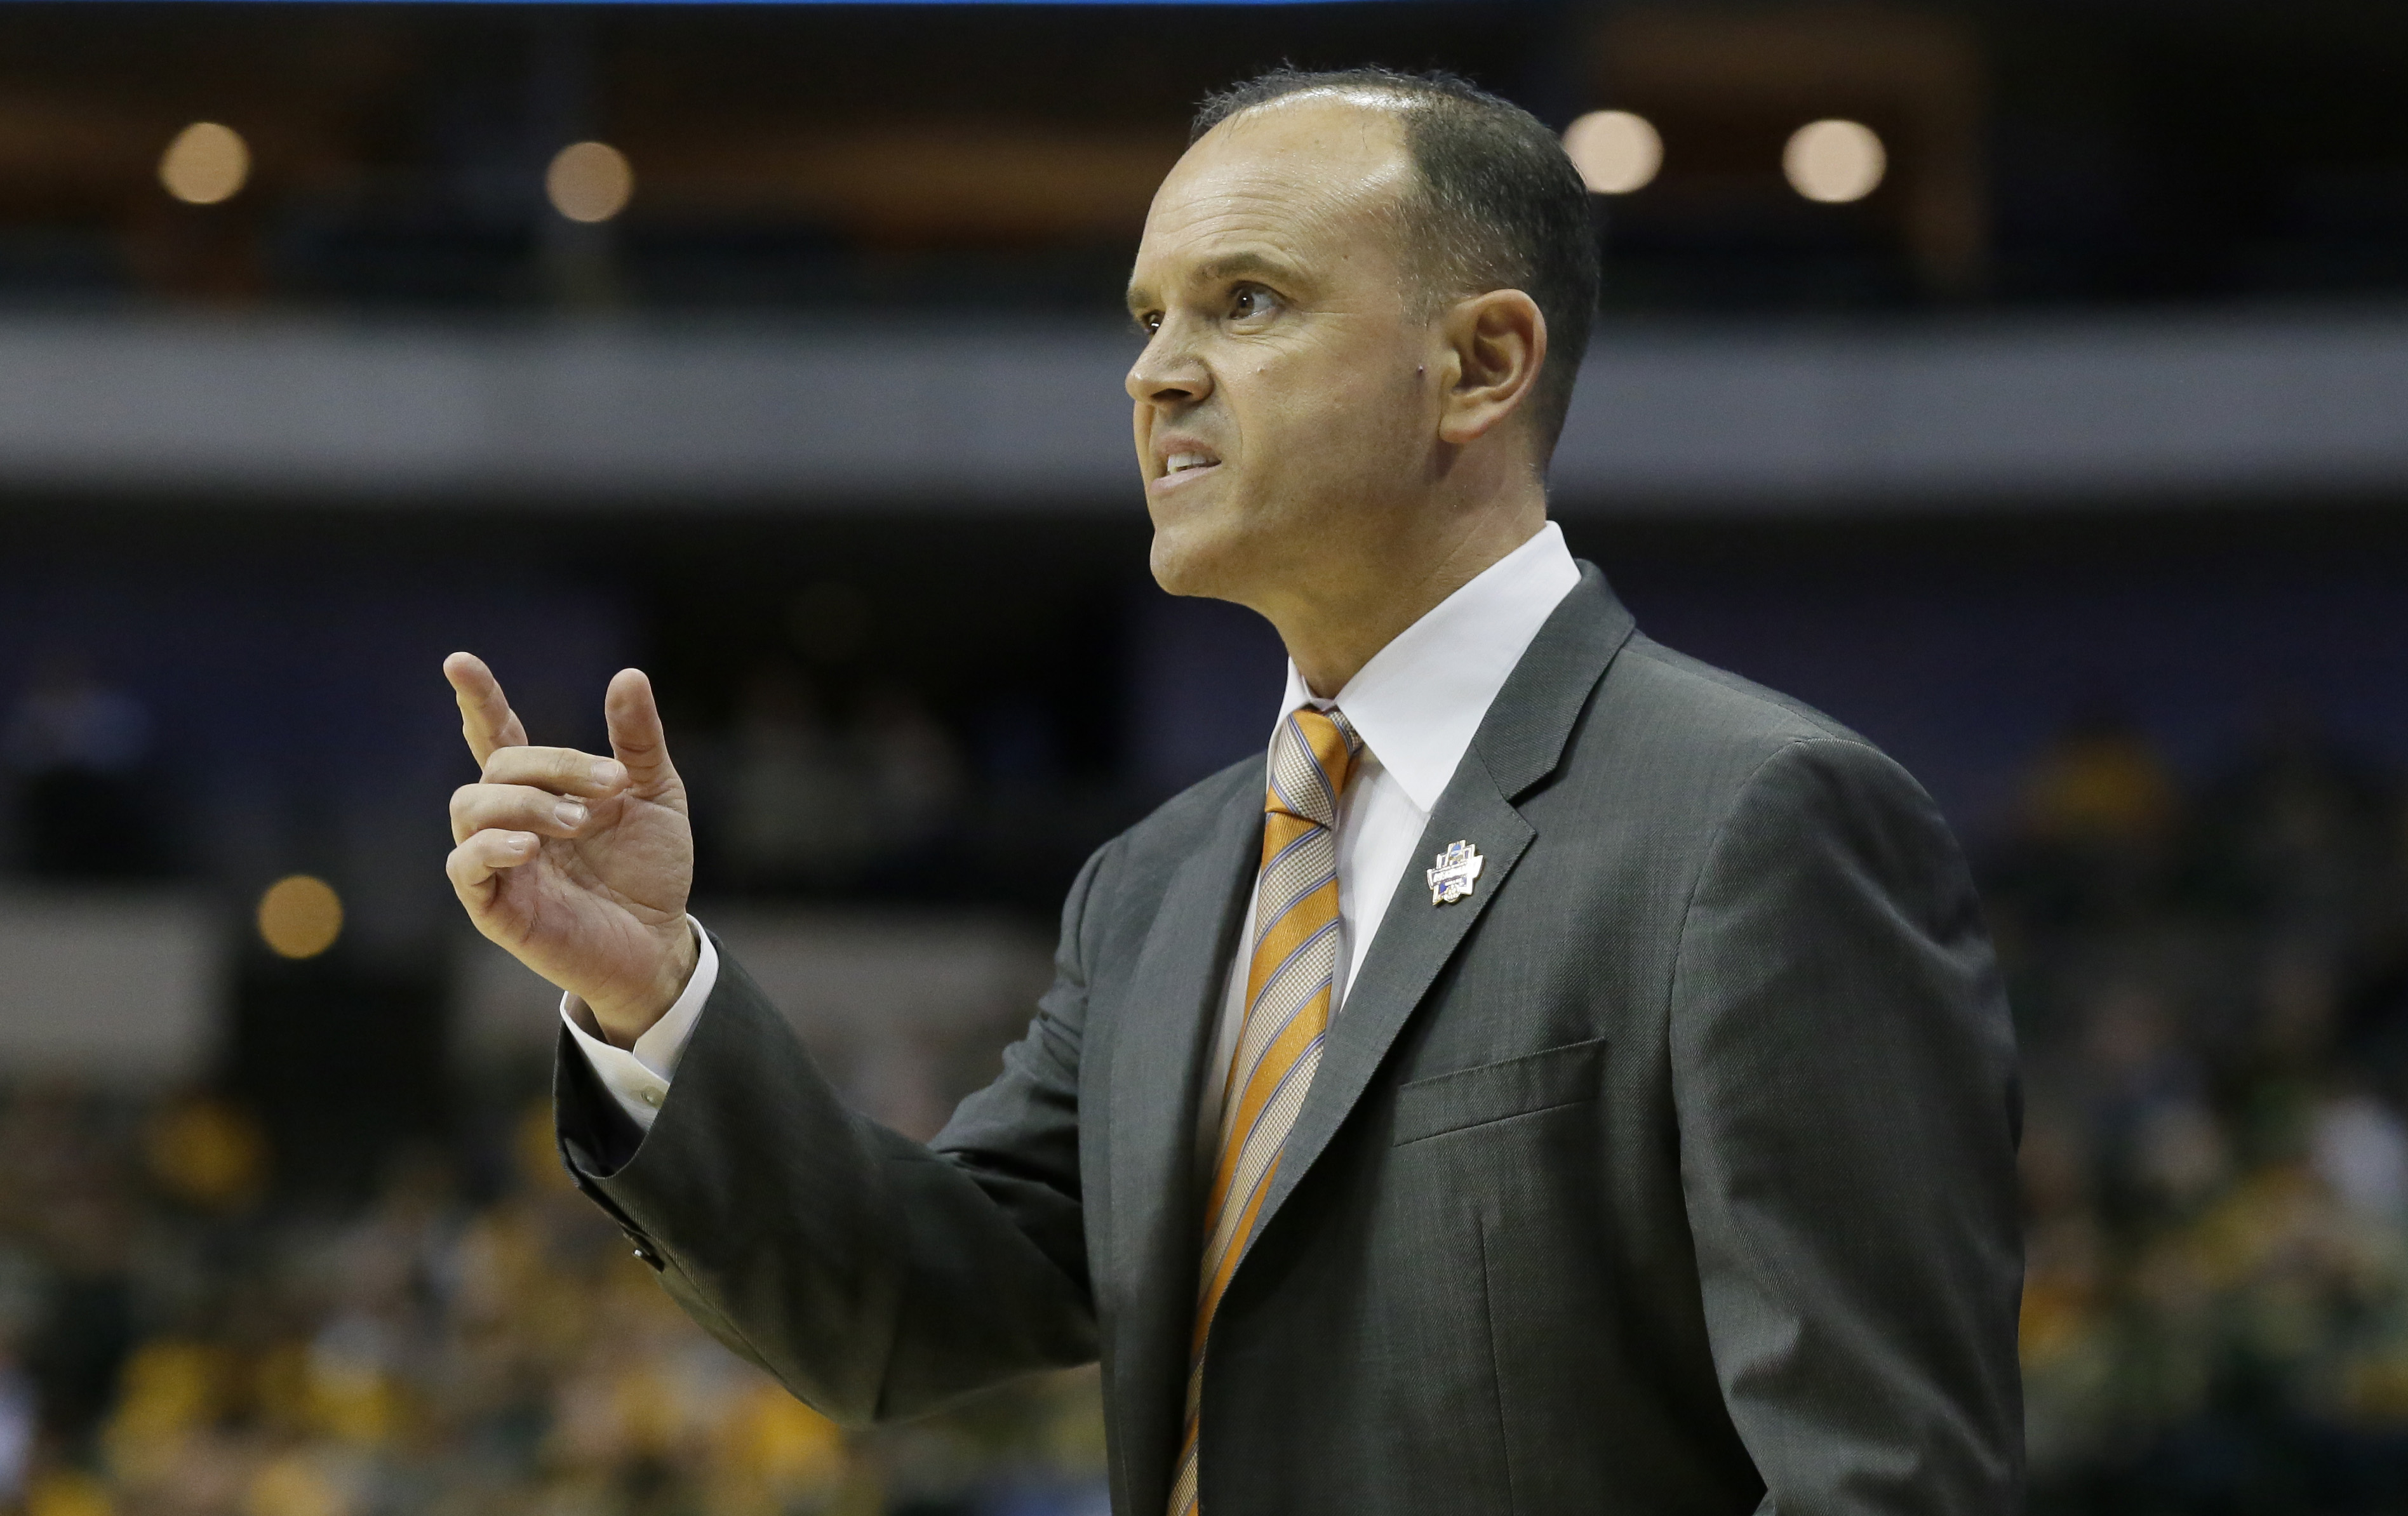 Oregon State head coach Scott Rueck watches from the sideline during the first half of a regional final of the women's NCAA Tournament against Baylor Monday, March 28, 2016, in Dallas. (AP Photo/LM Otero)